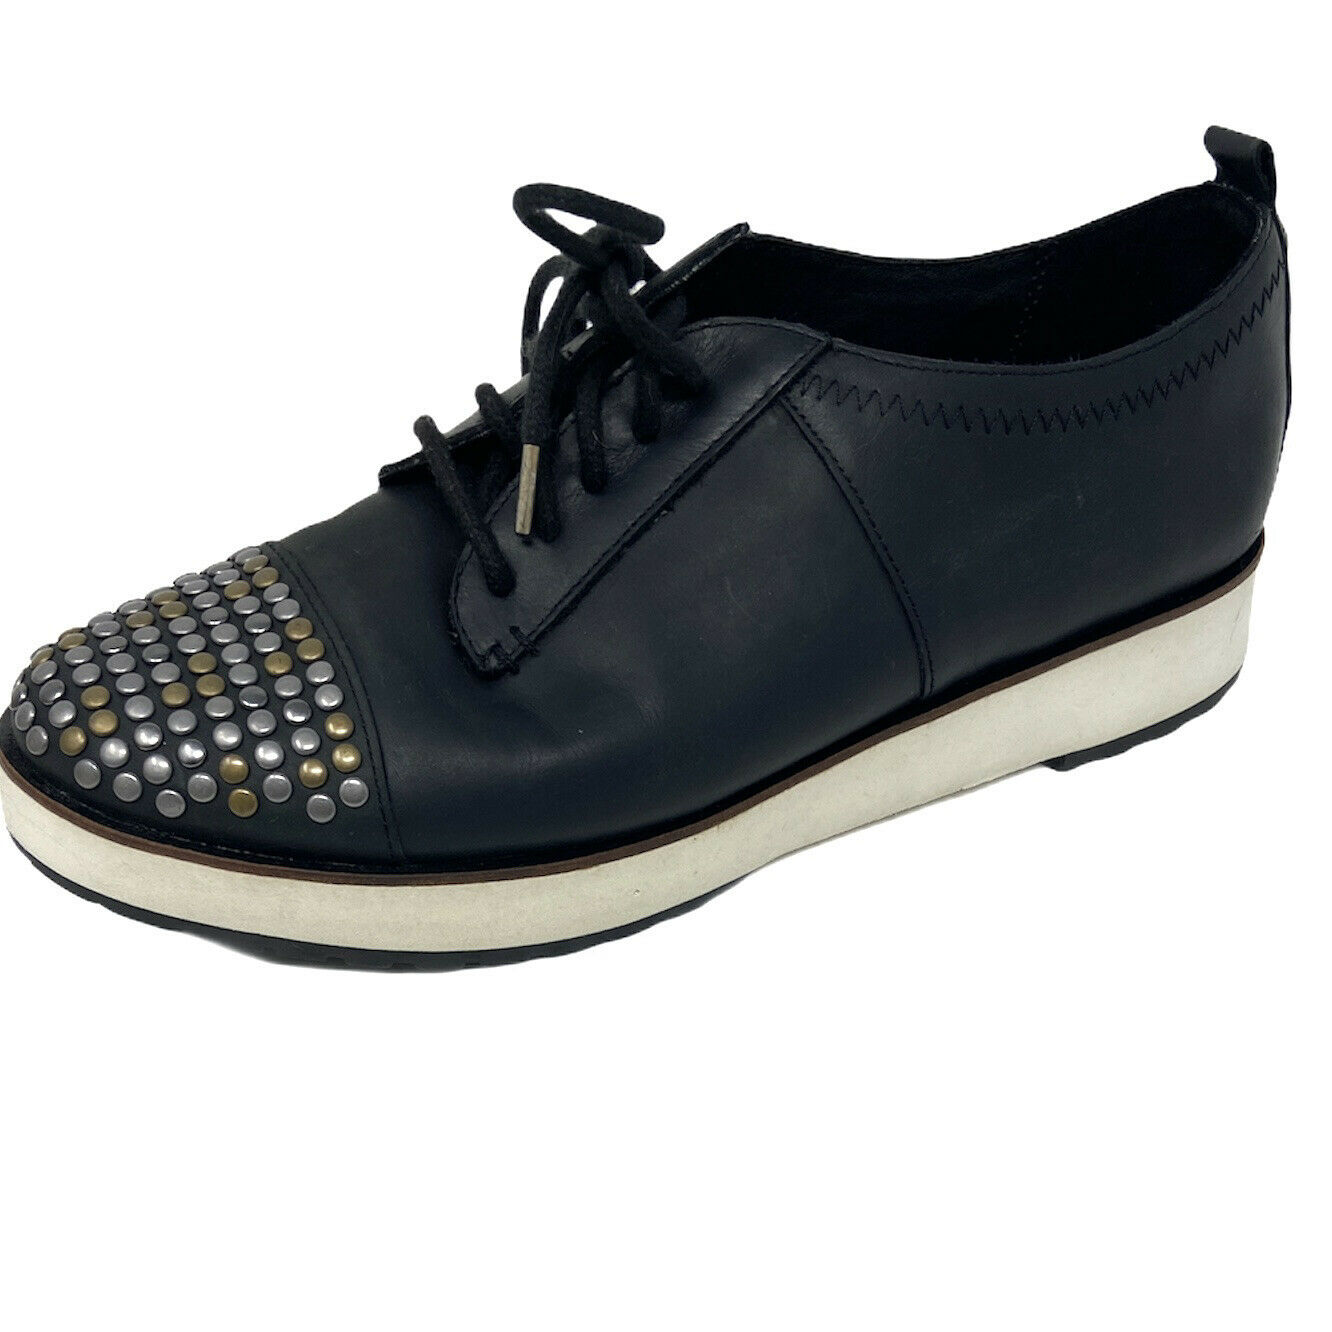 Women's Diesel Studded Toes Black Leather Shoes Size 7.5